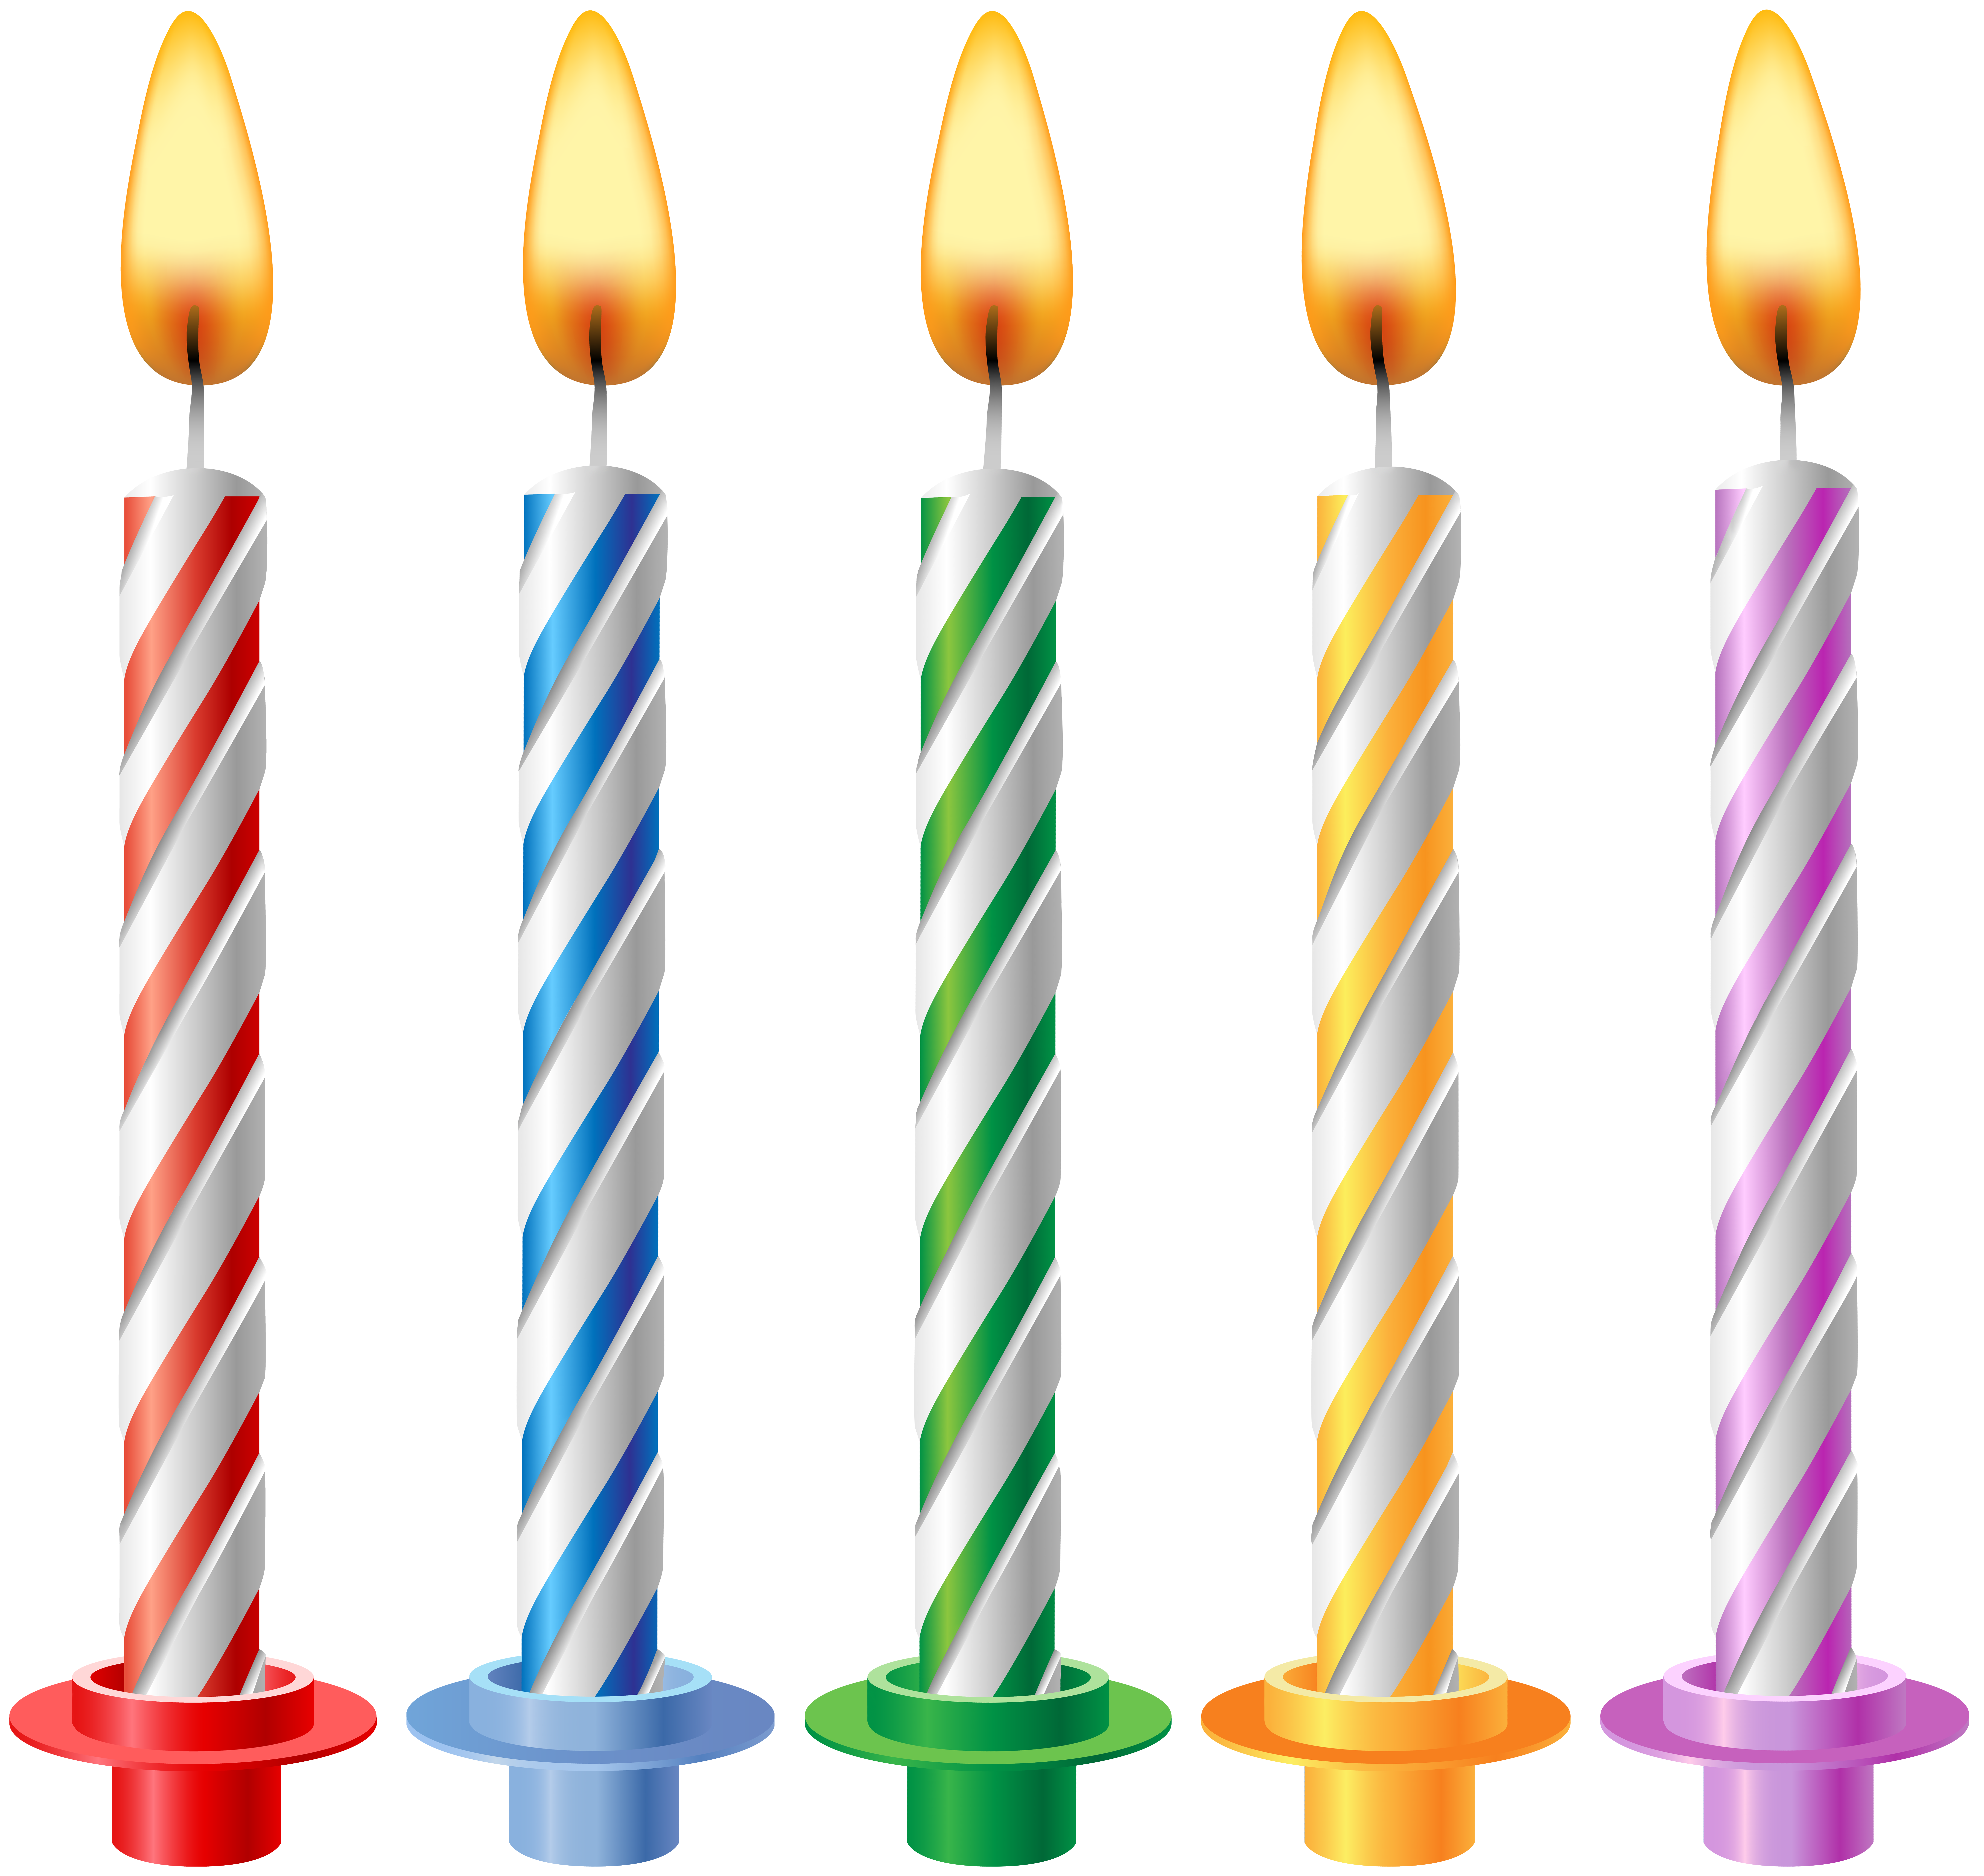 Transparent Candles Happy Birthday View Full Size Clip Art Gallery Yopriceville 8000 X 7563 3 0